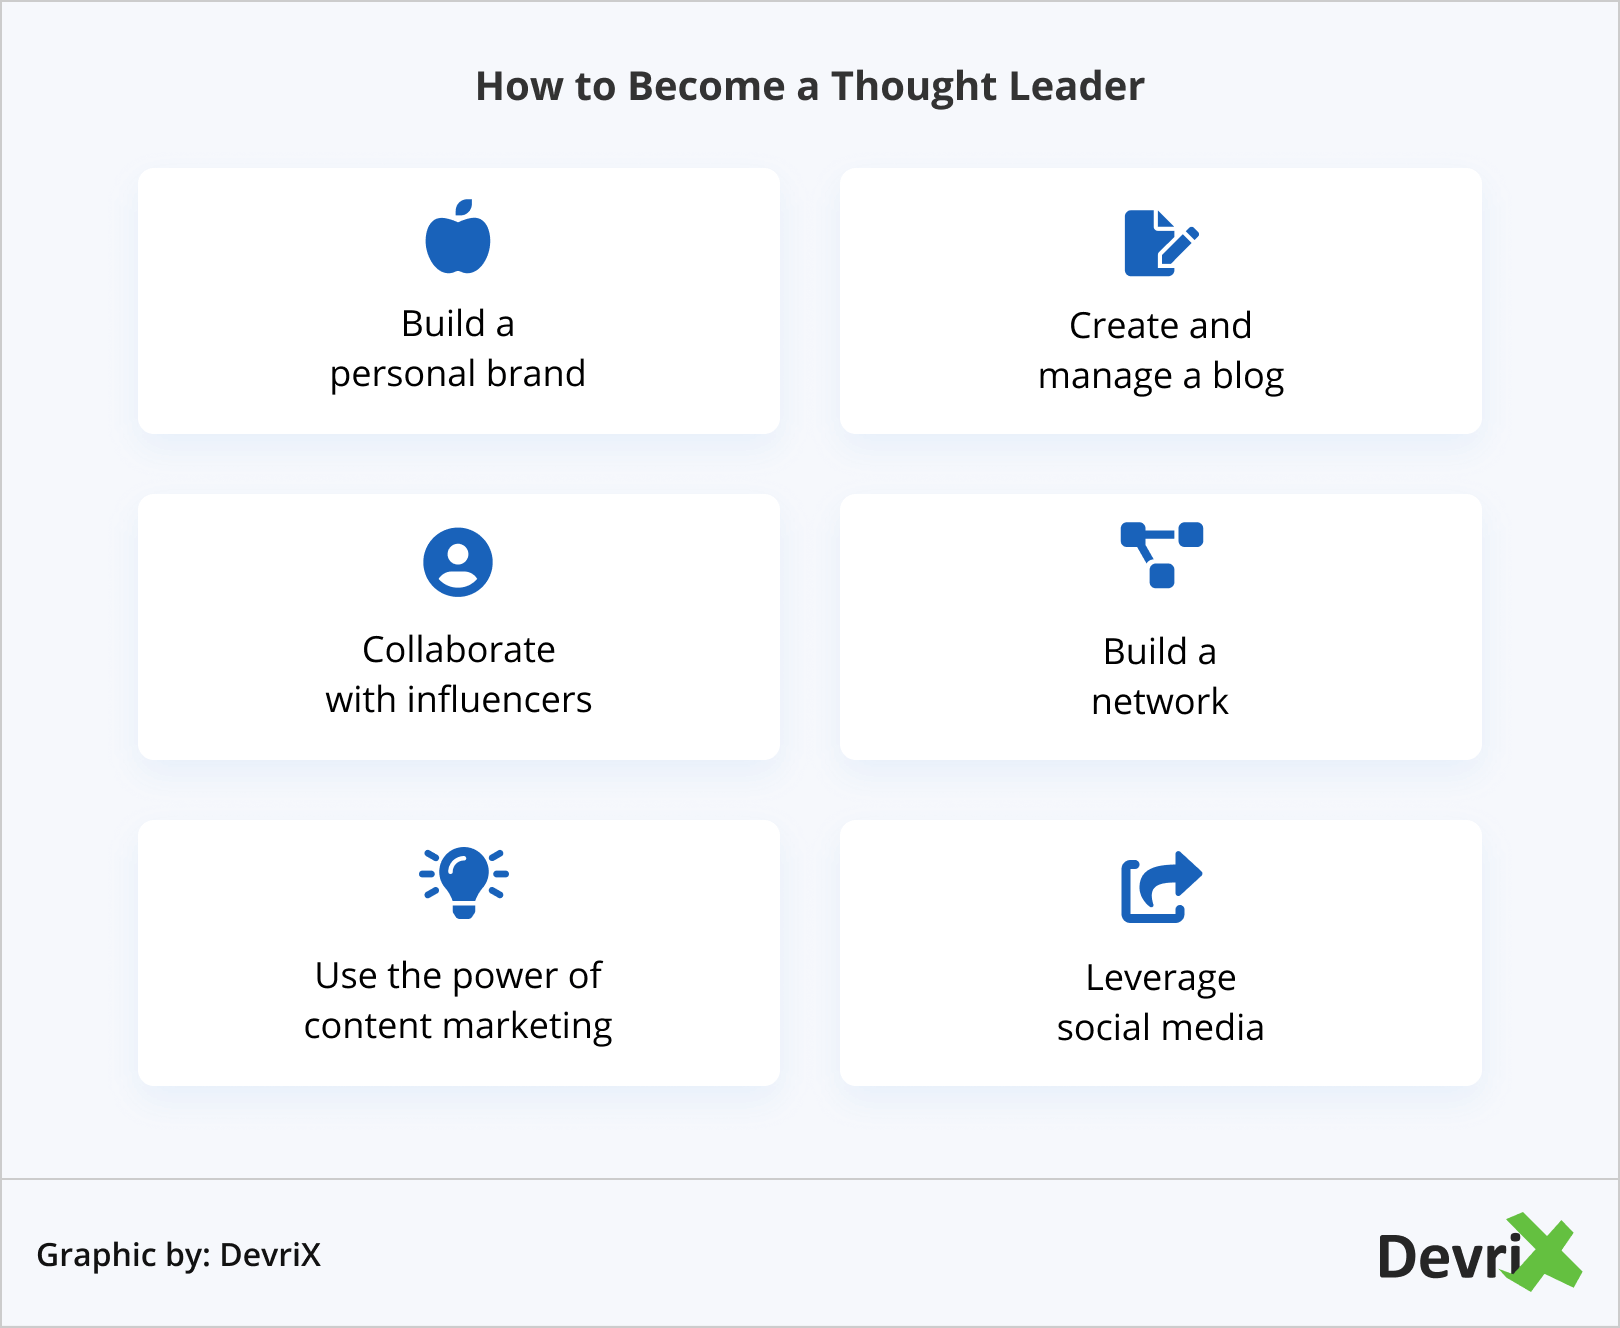 How to Become a Thought Leader